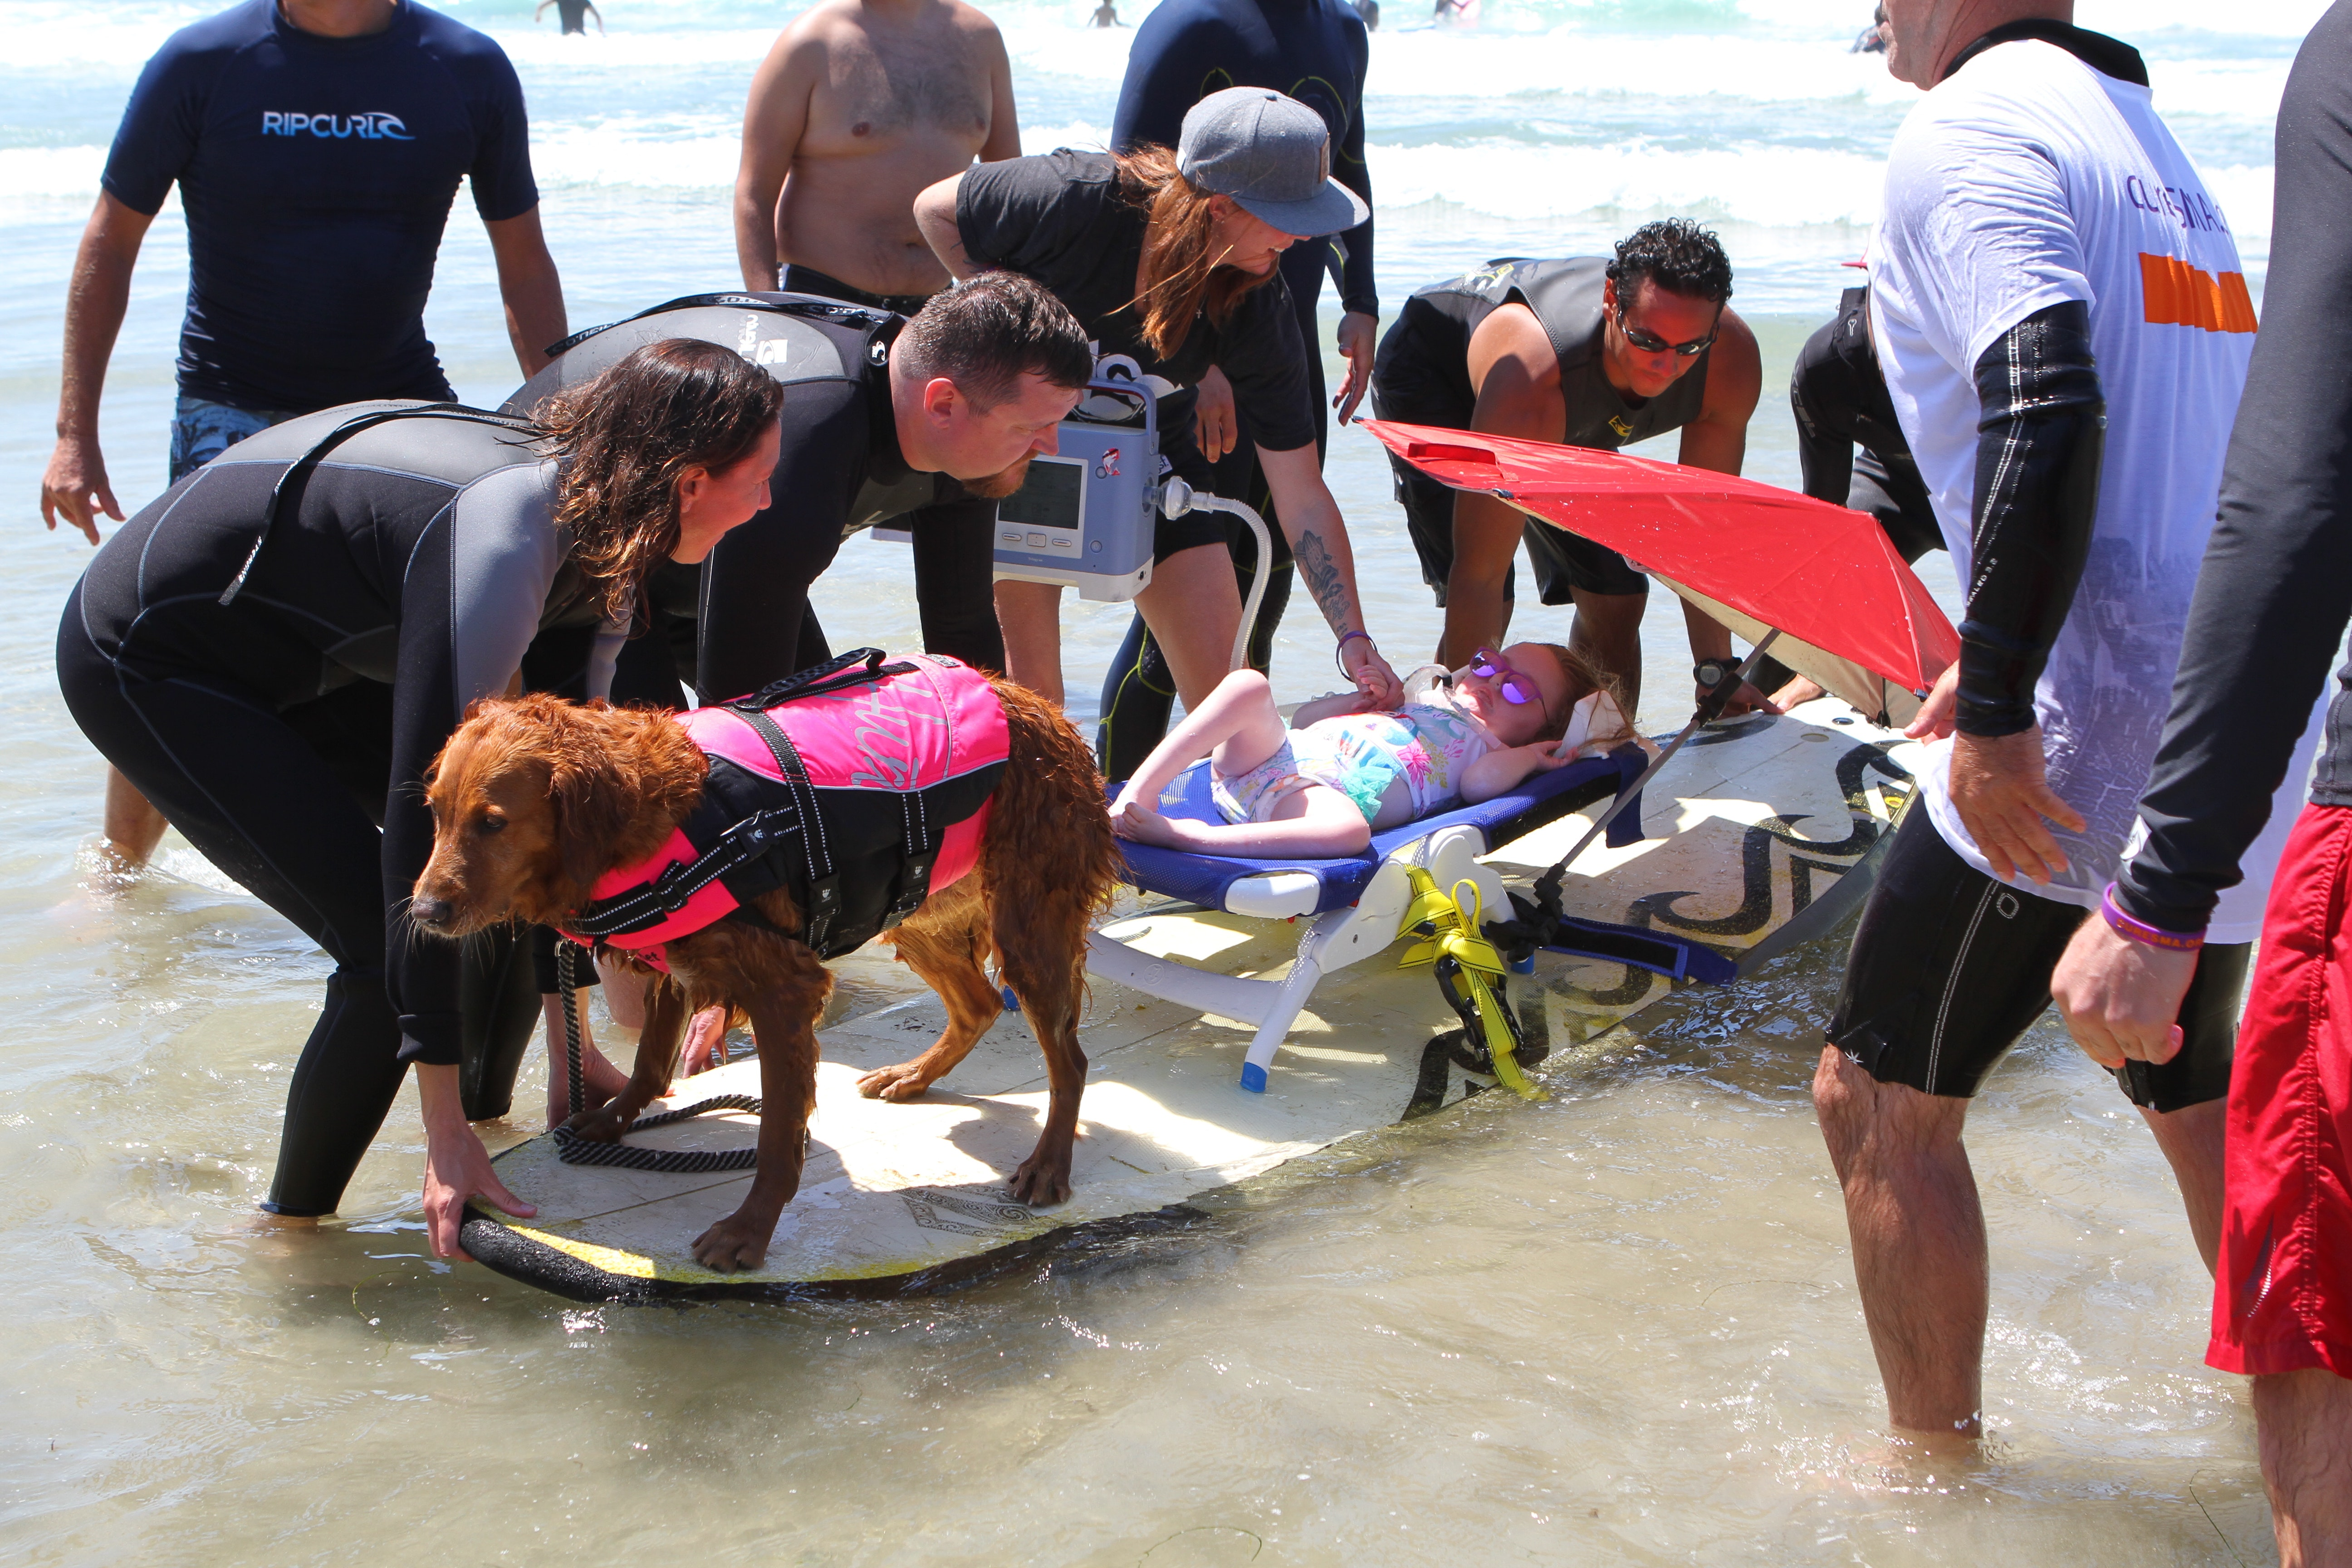 Ricochet, the surfing dog